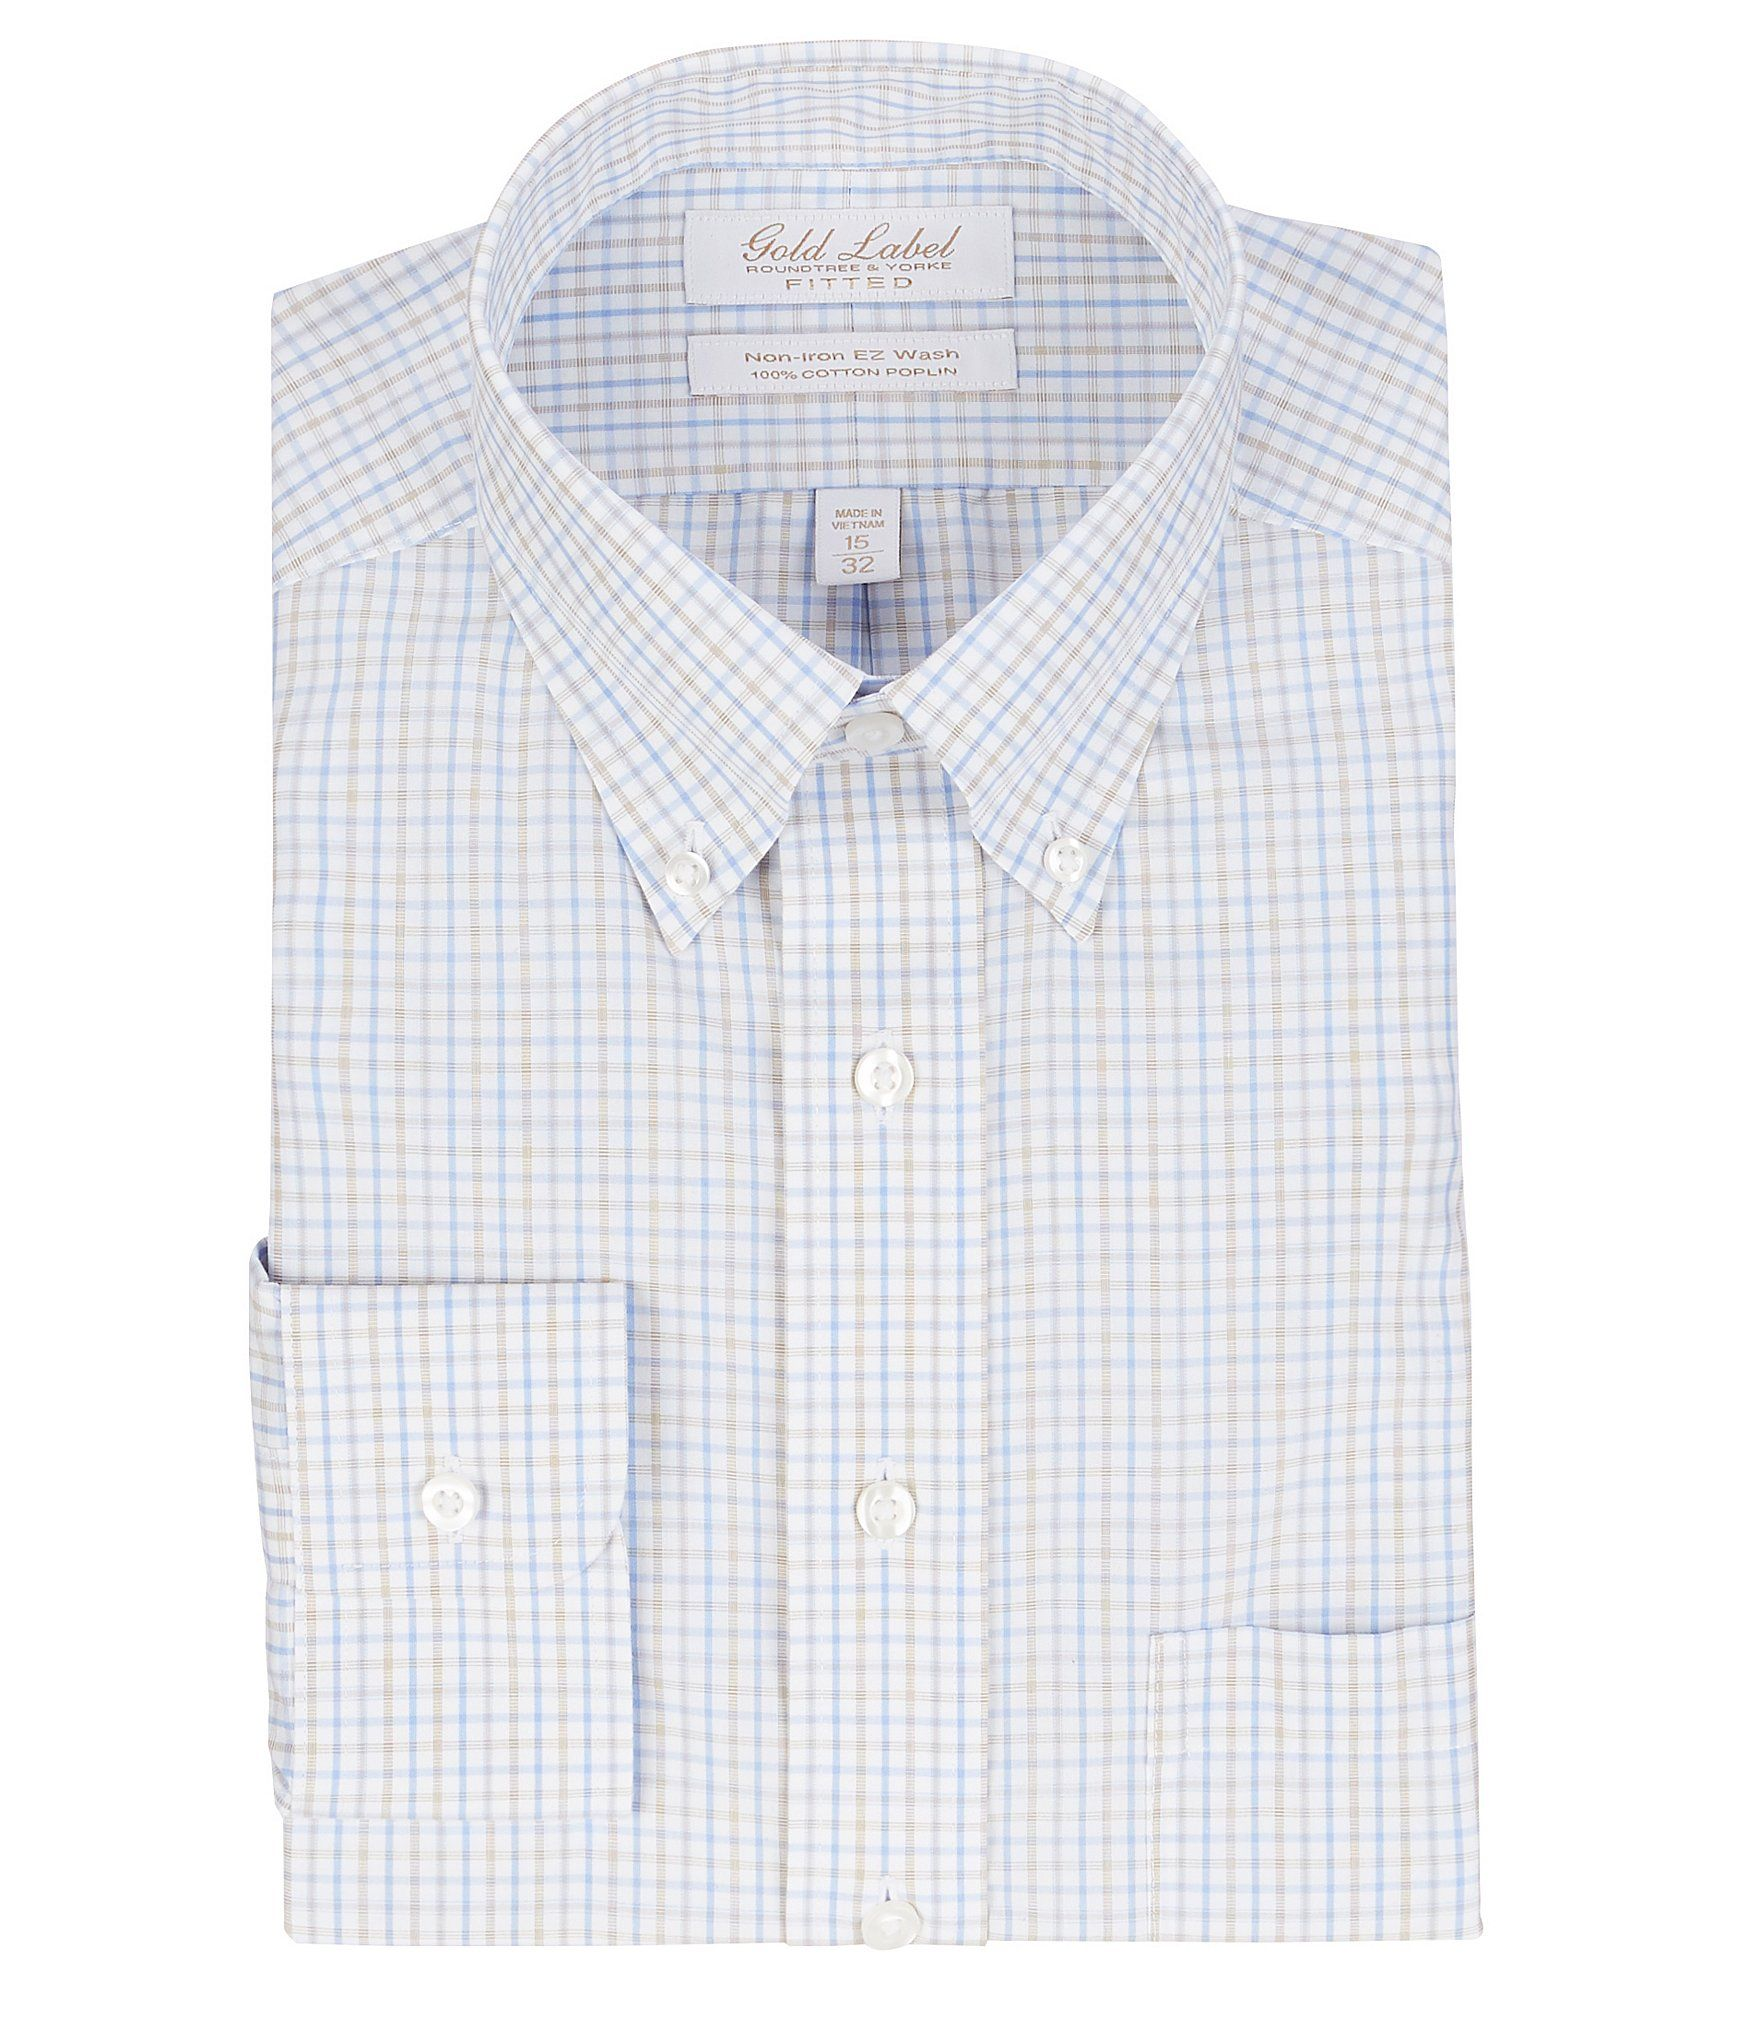 From Gold Label Roundtree & Yorke, this fitted button-down collar dress shirt features:Checked patternButton-down collarButton frontSingle patch pocketExact sleeve length for the perfect fitButton cuffsBack yoke with box pleatTaped shoulder and side seamsCurved hemWrinkle-free; no iron neededEasy Wash finish on cuffs and collar releases stains in washerCottonMachine Wash / Tumble DryImported.